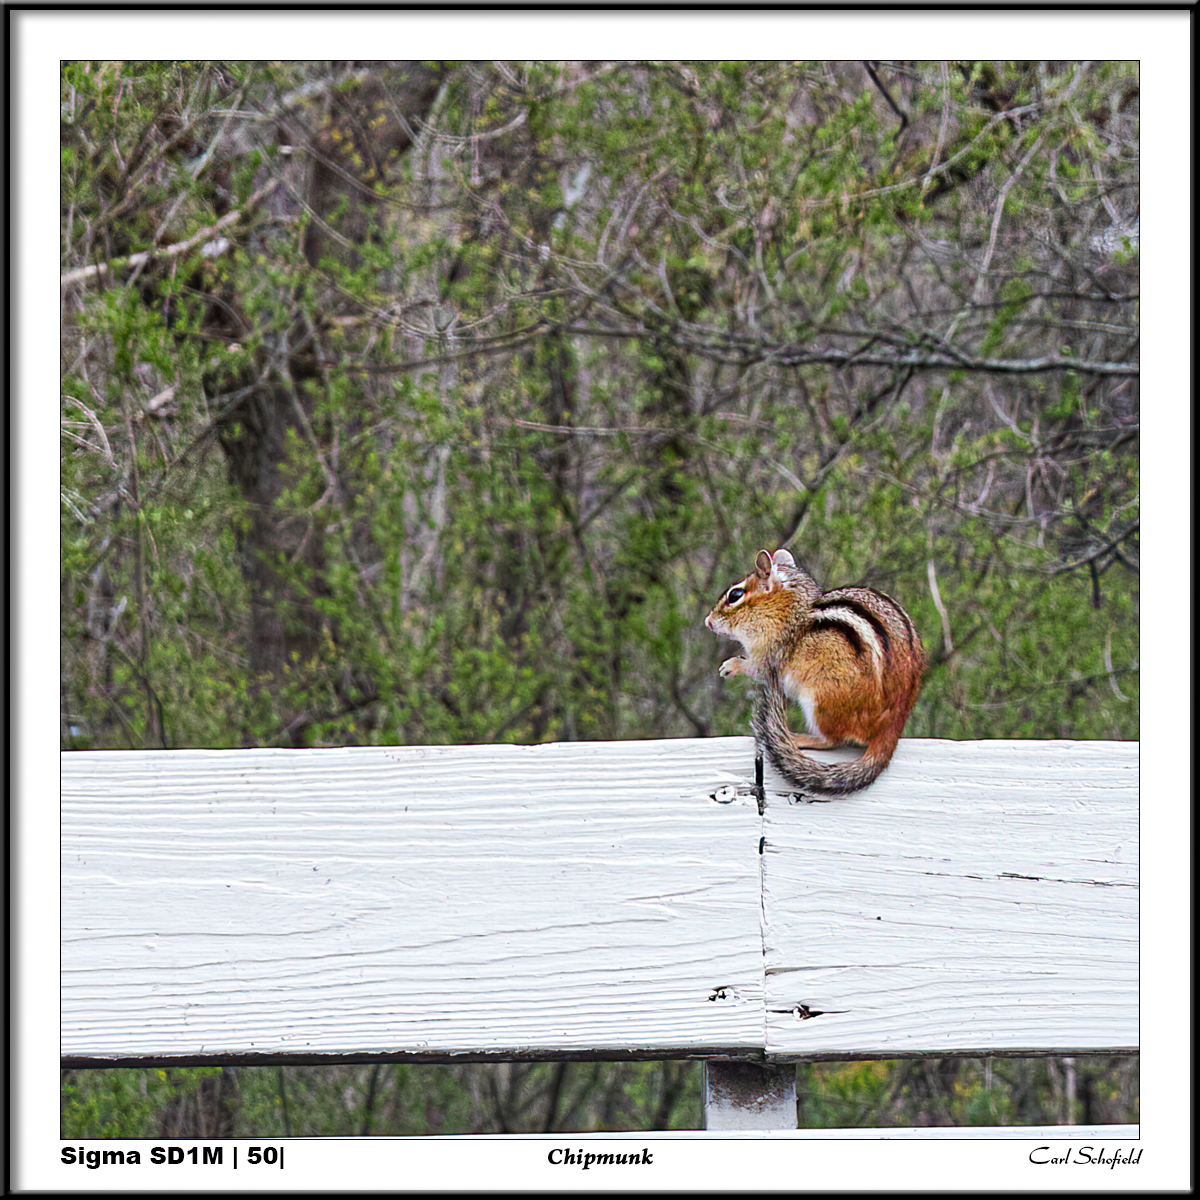 Chipmunk by scho in Regular Member Gallery